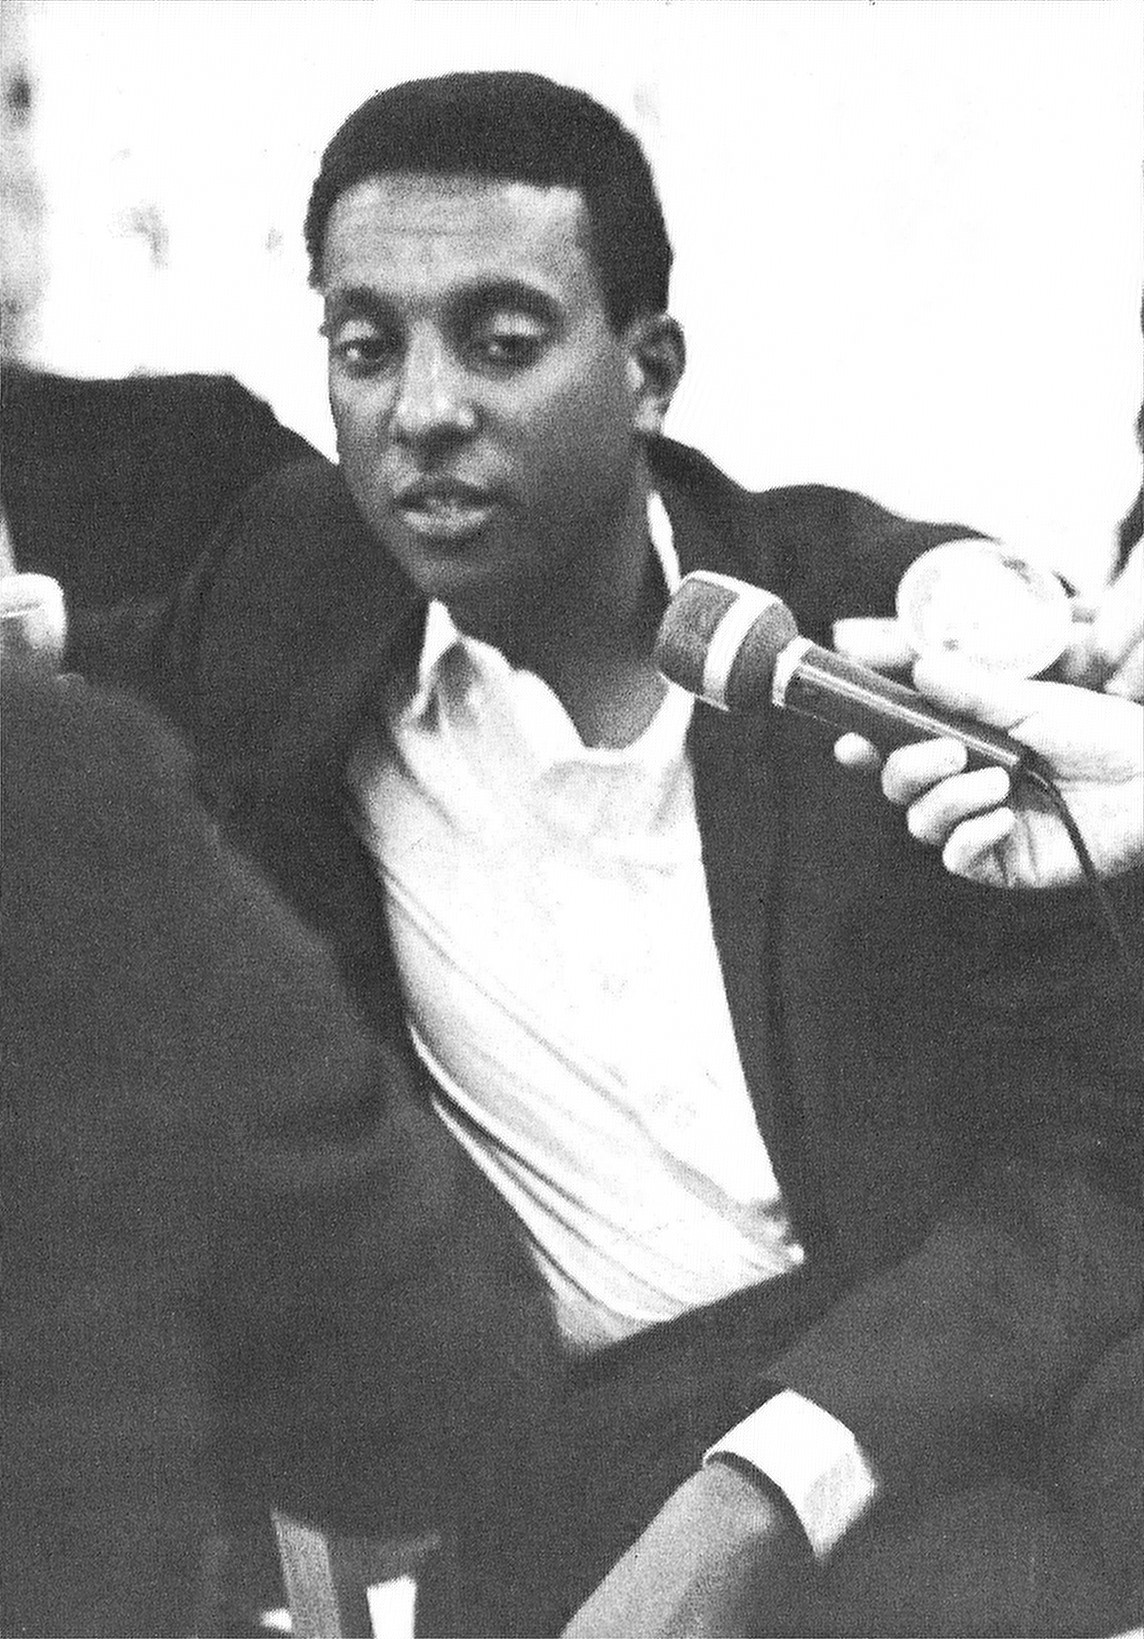 """Stokely Carmichael discusses """"black power"""" at Michigan State University in 1967."""